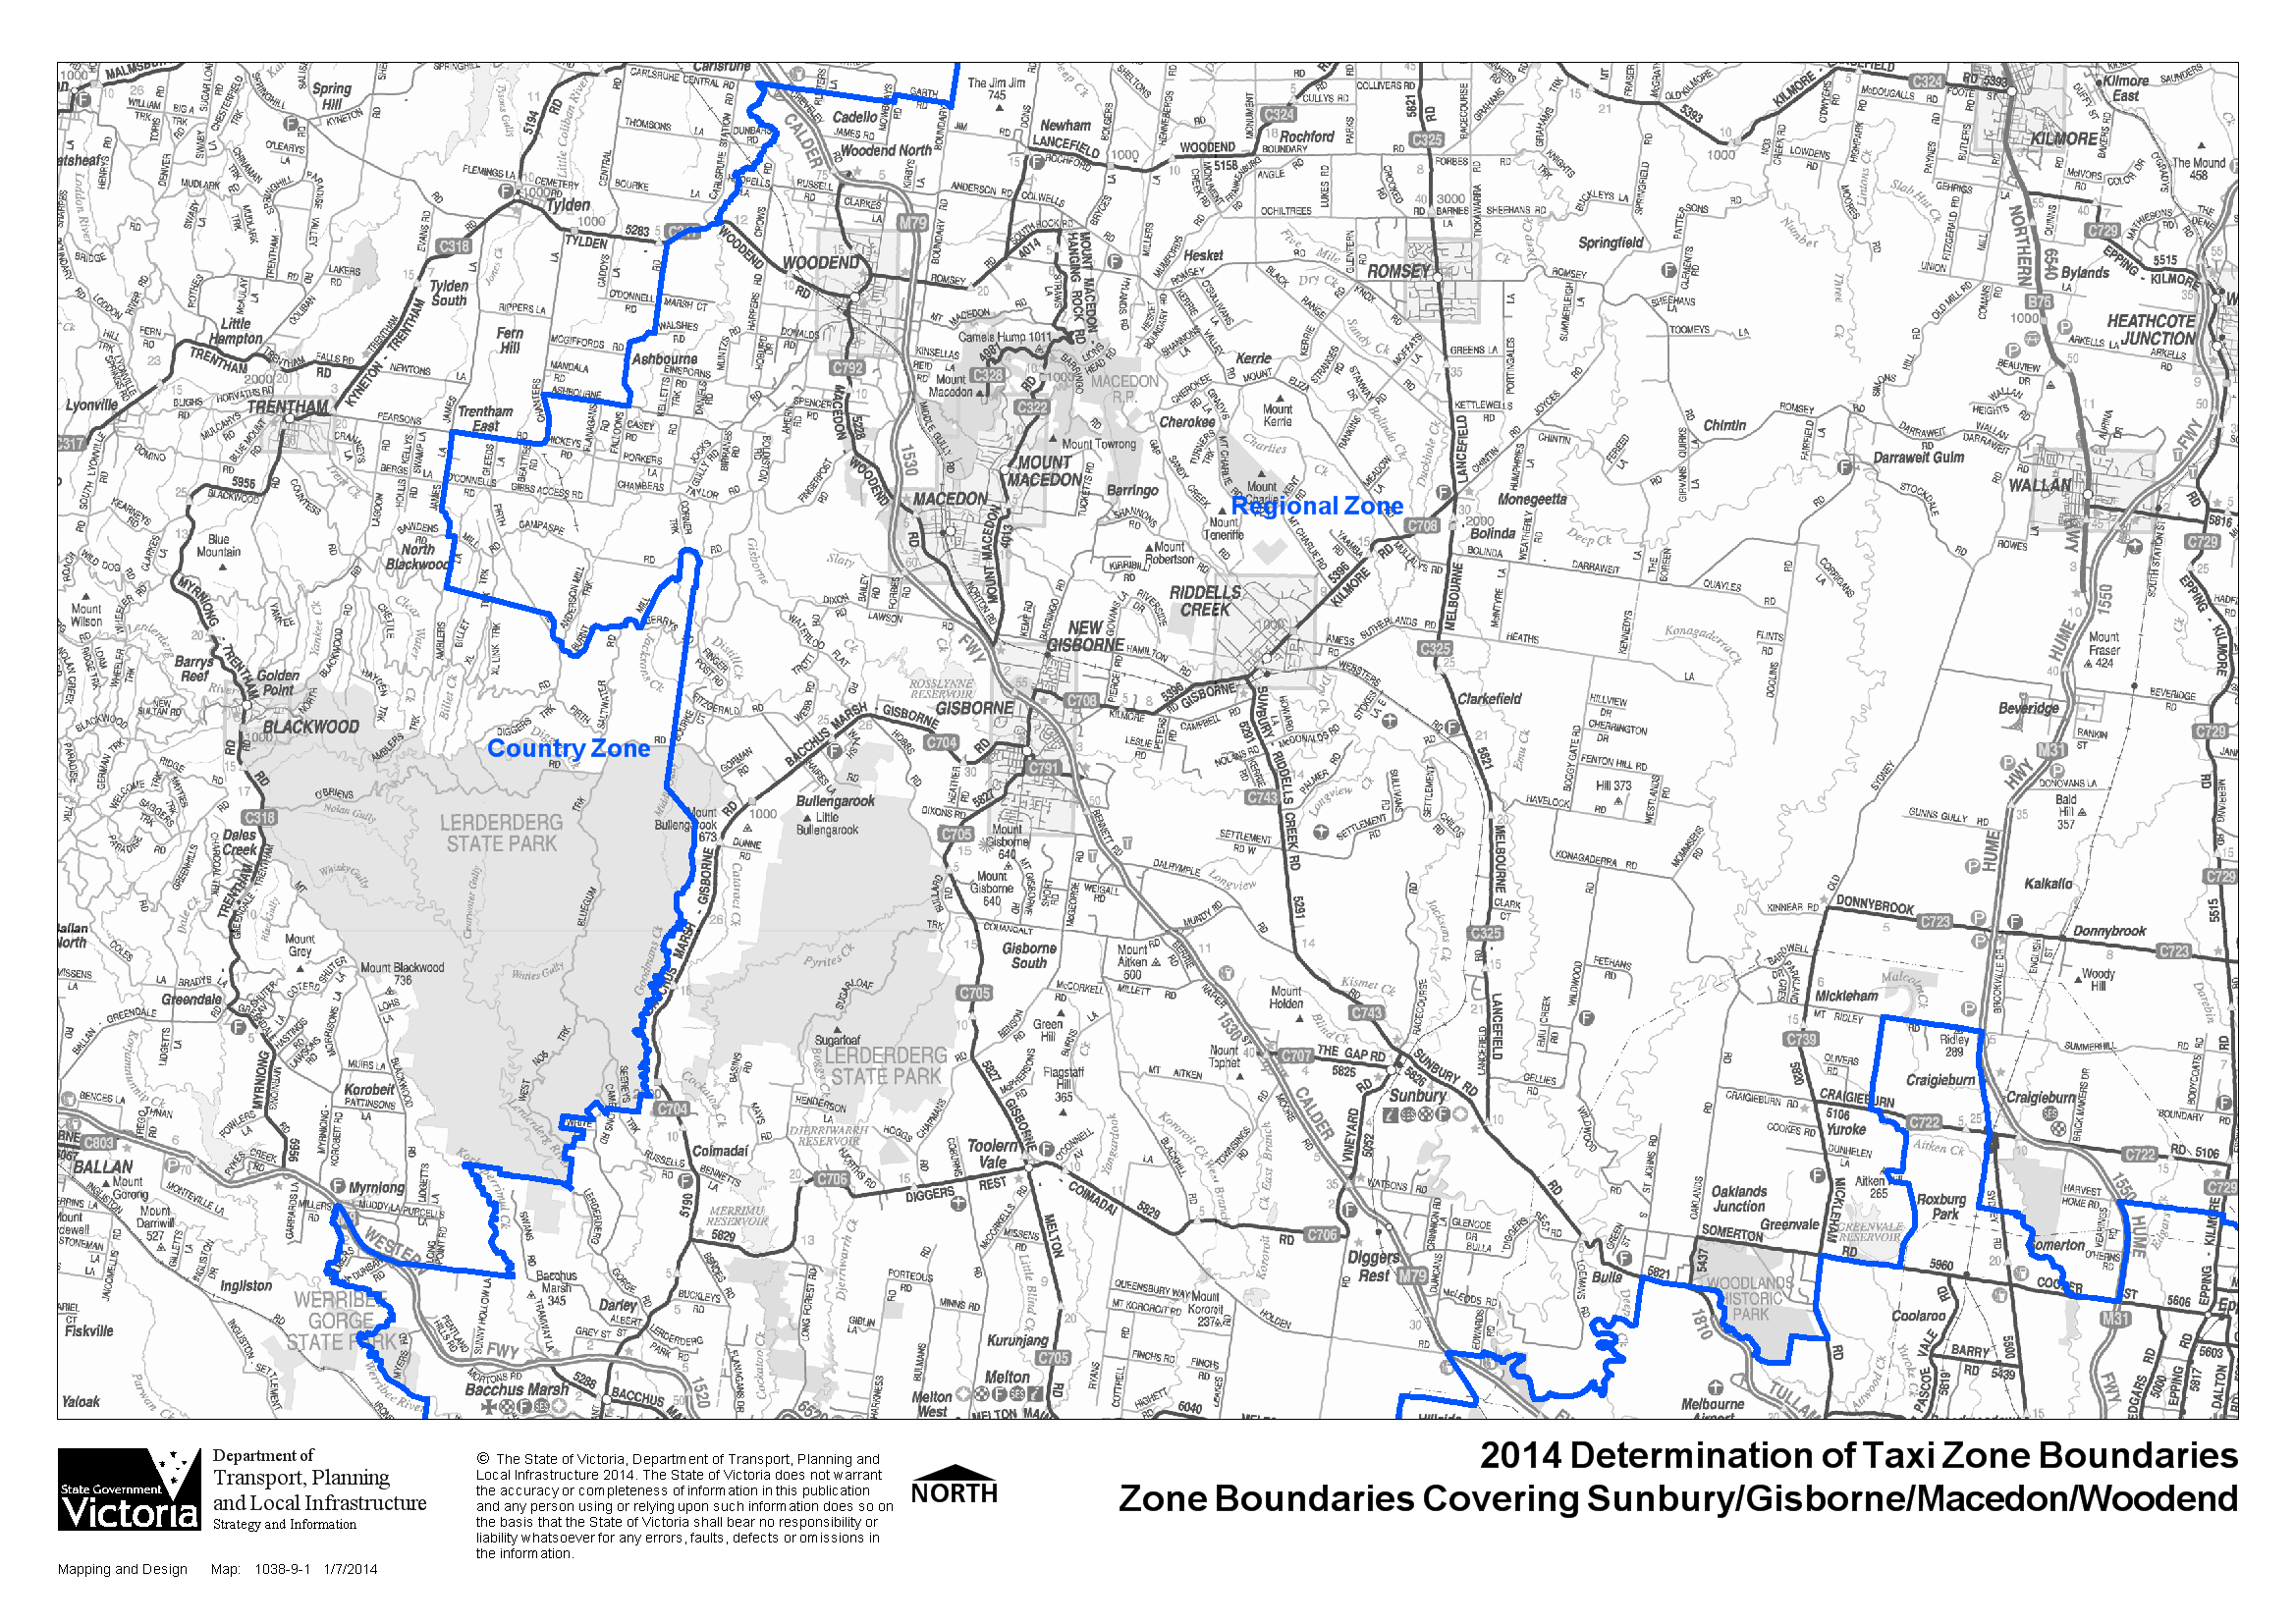 Detailed Maps Of Regional Zone